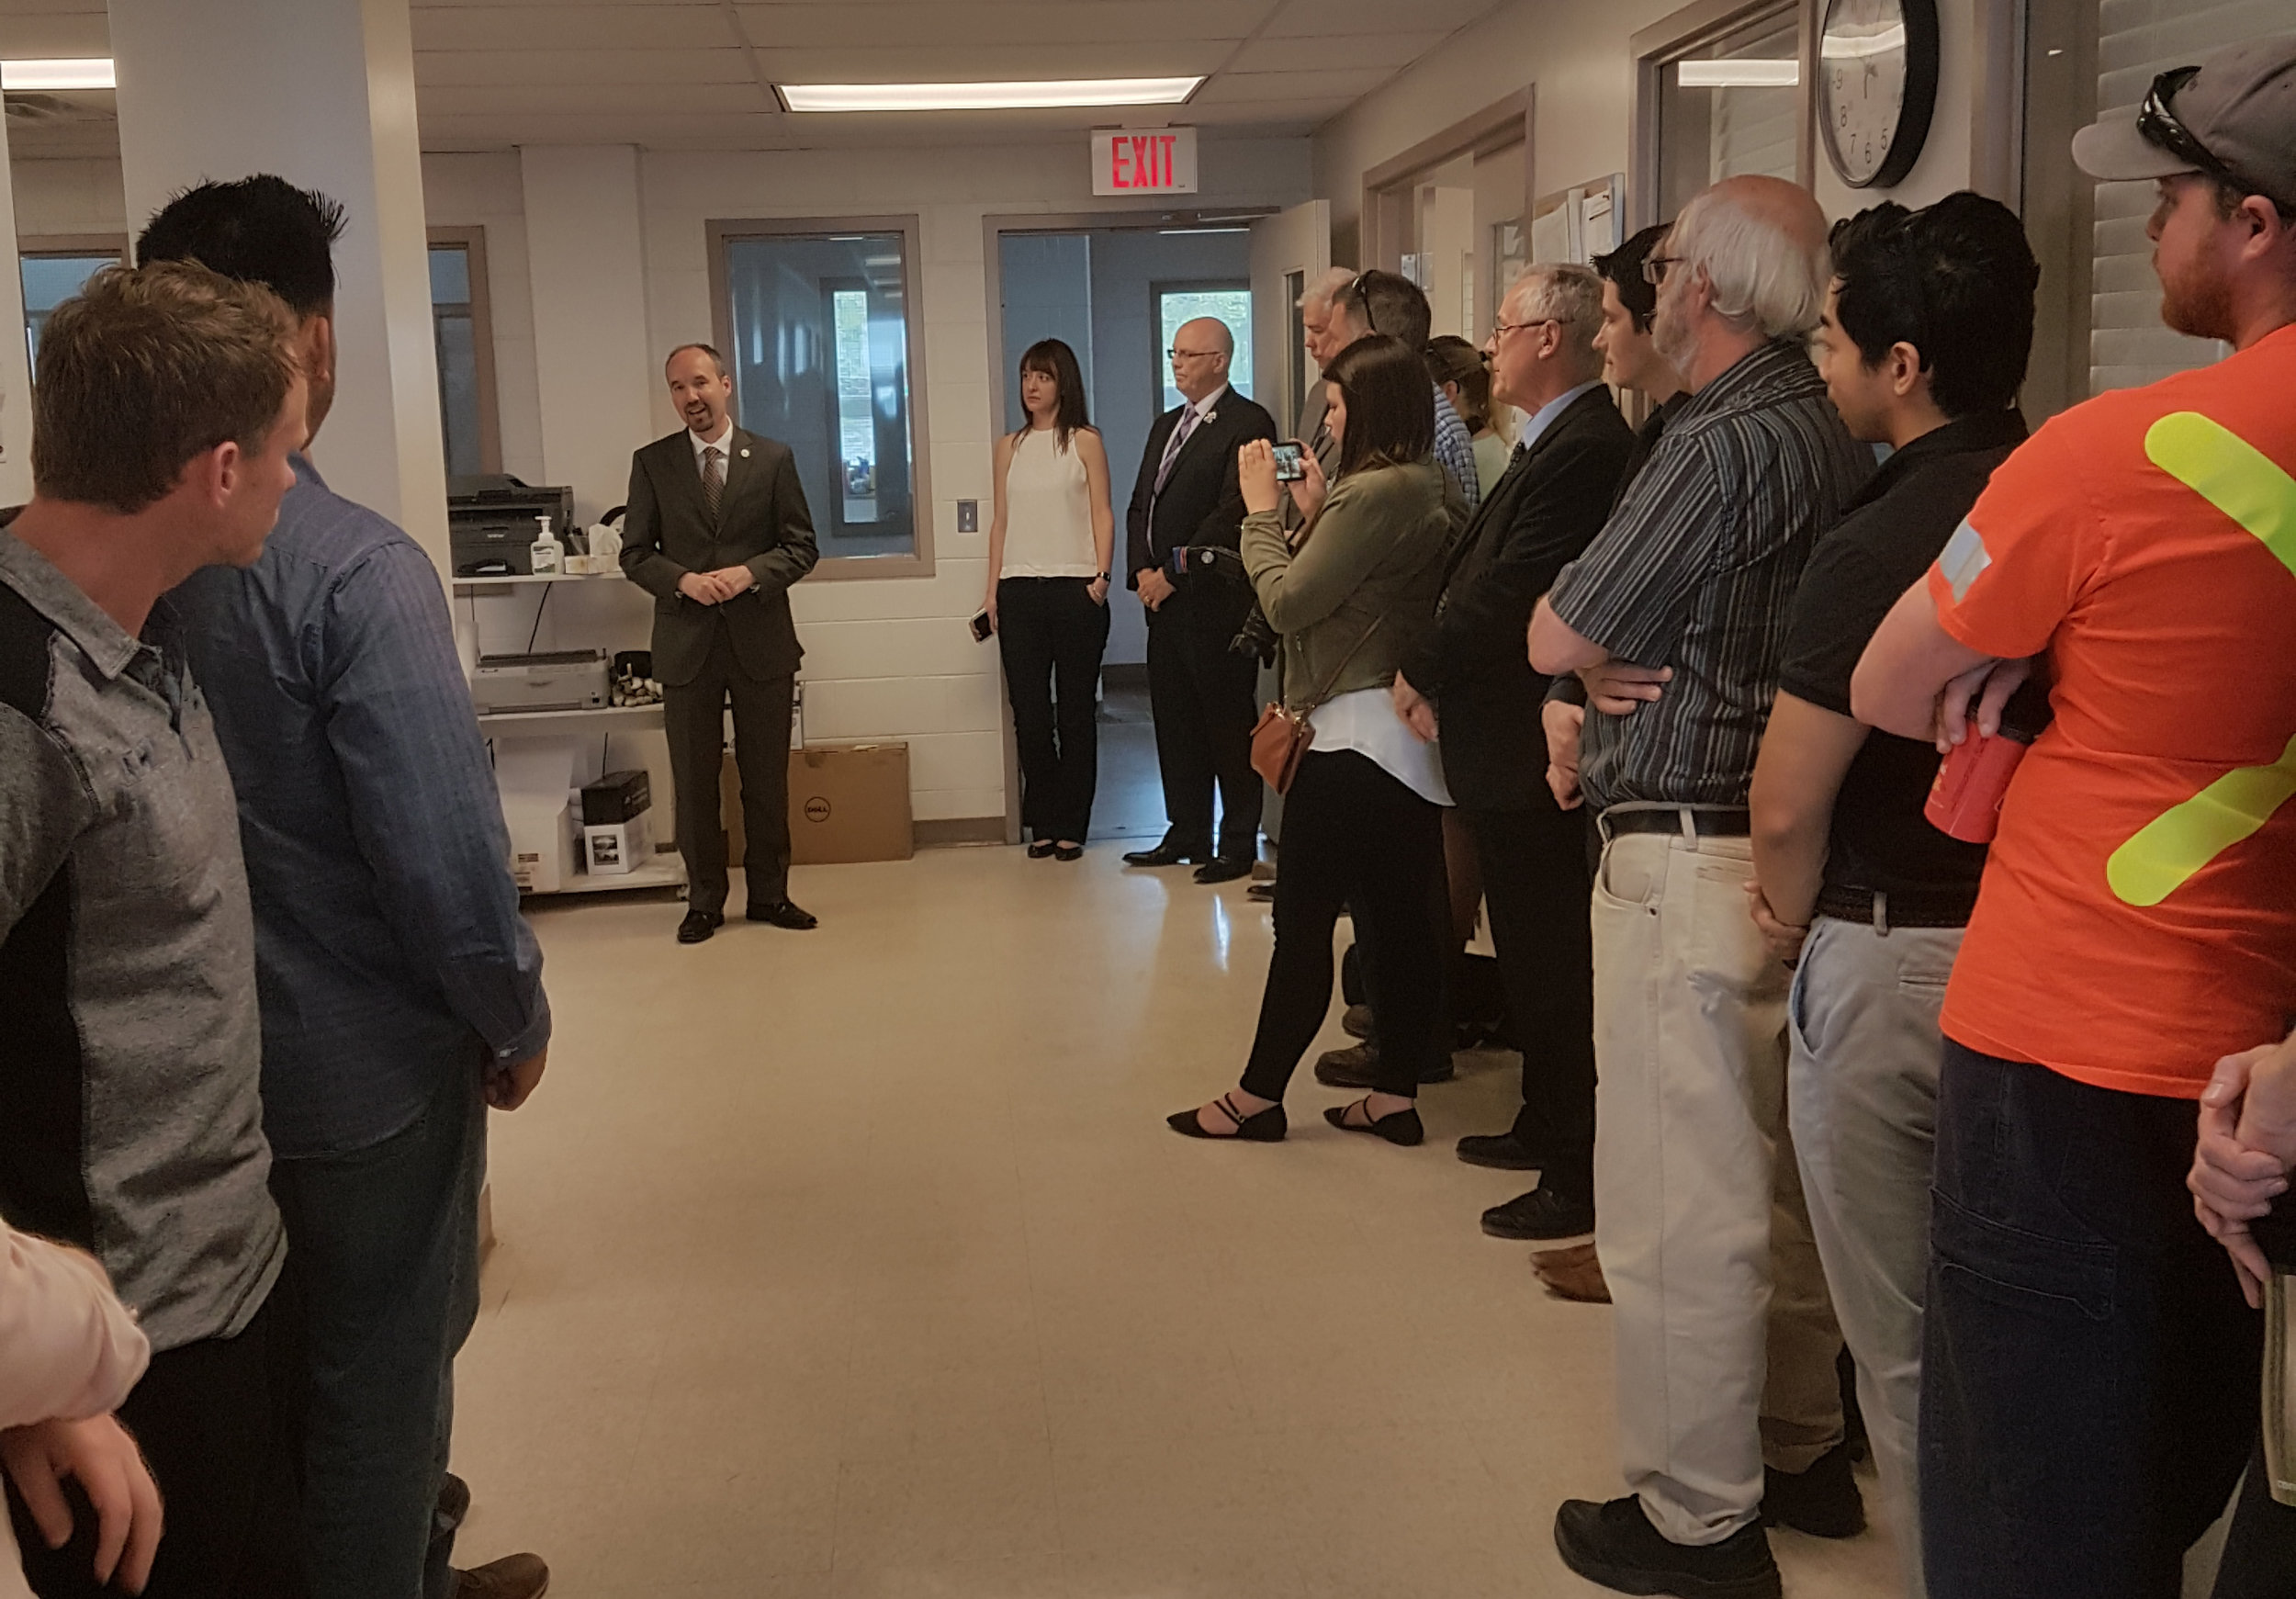 Kingston mayor Bryan Paterson speaking at the King Street Water Treatment Plant about the launch of the overflow notifications.